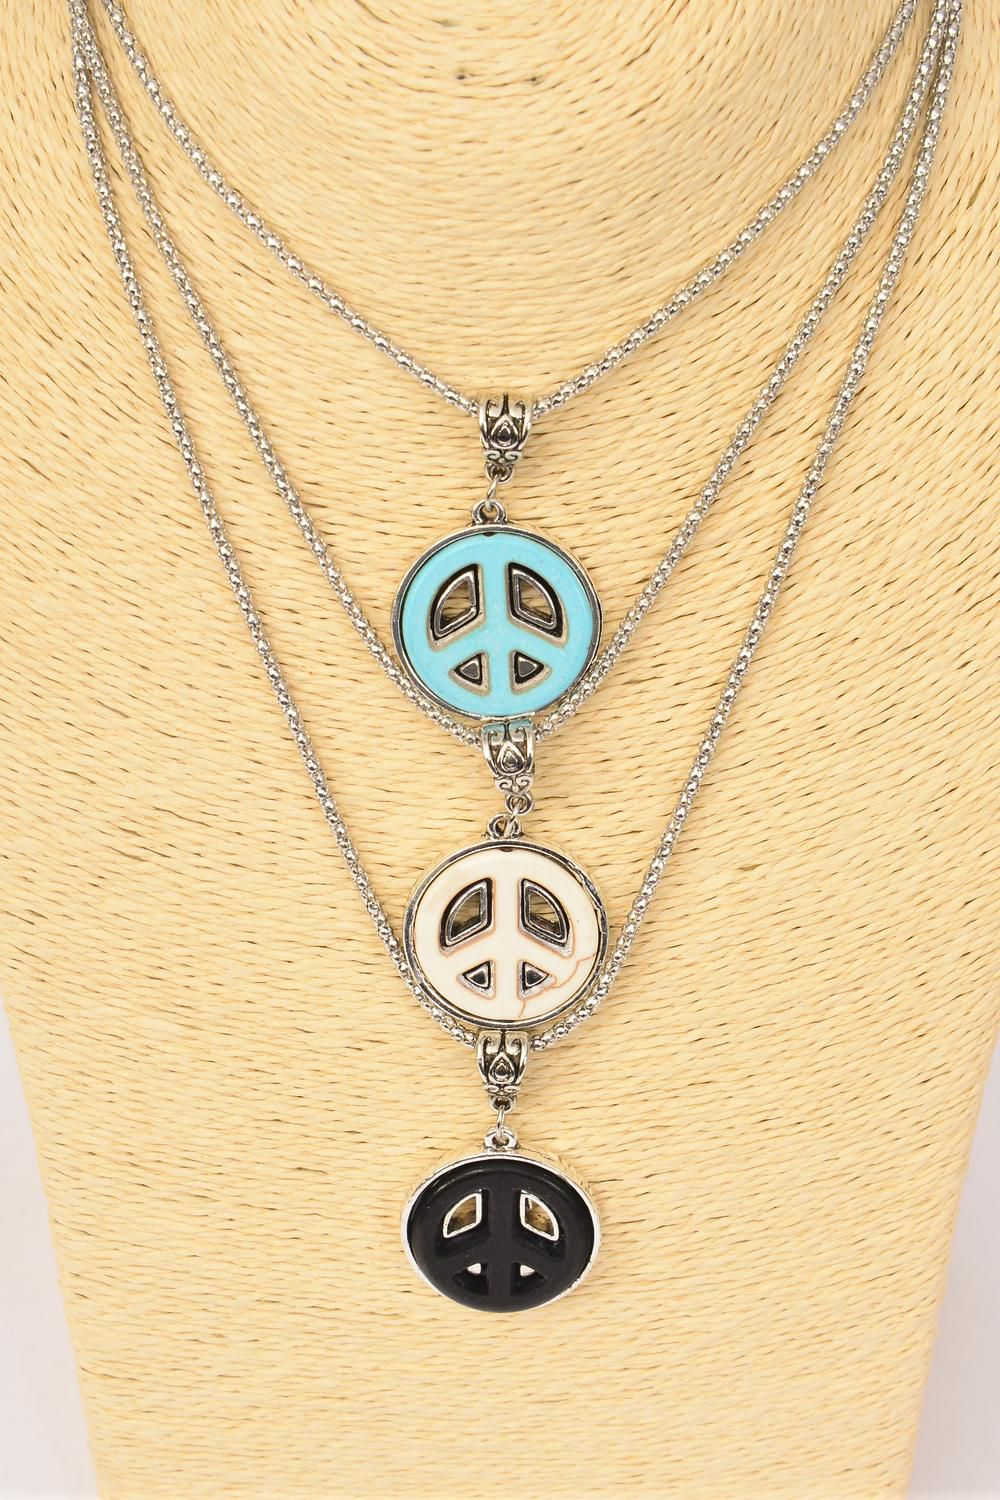 "Necklace Silver Chain Peace Sign Semiprecious Stone/DZ Pendant-1.25"" Wide,Chain-18"" Extension Chain,4 Ivory,4 Black,4 Turquoise Asst,Hang Tag & OPP Bag & UPC Code"